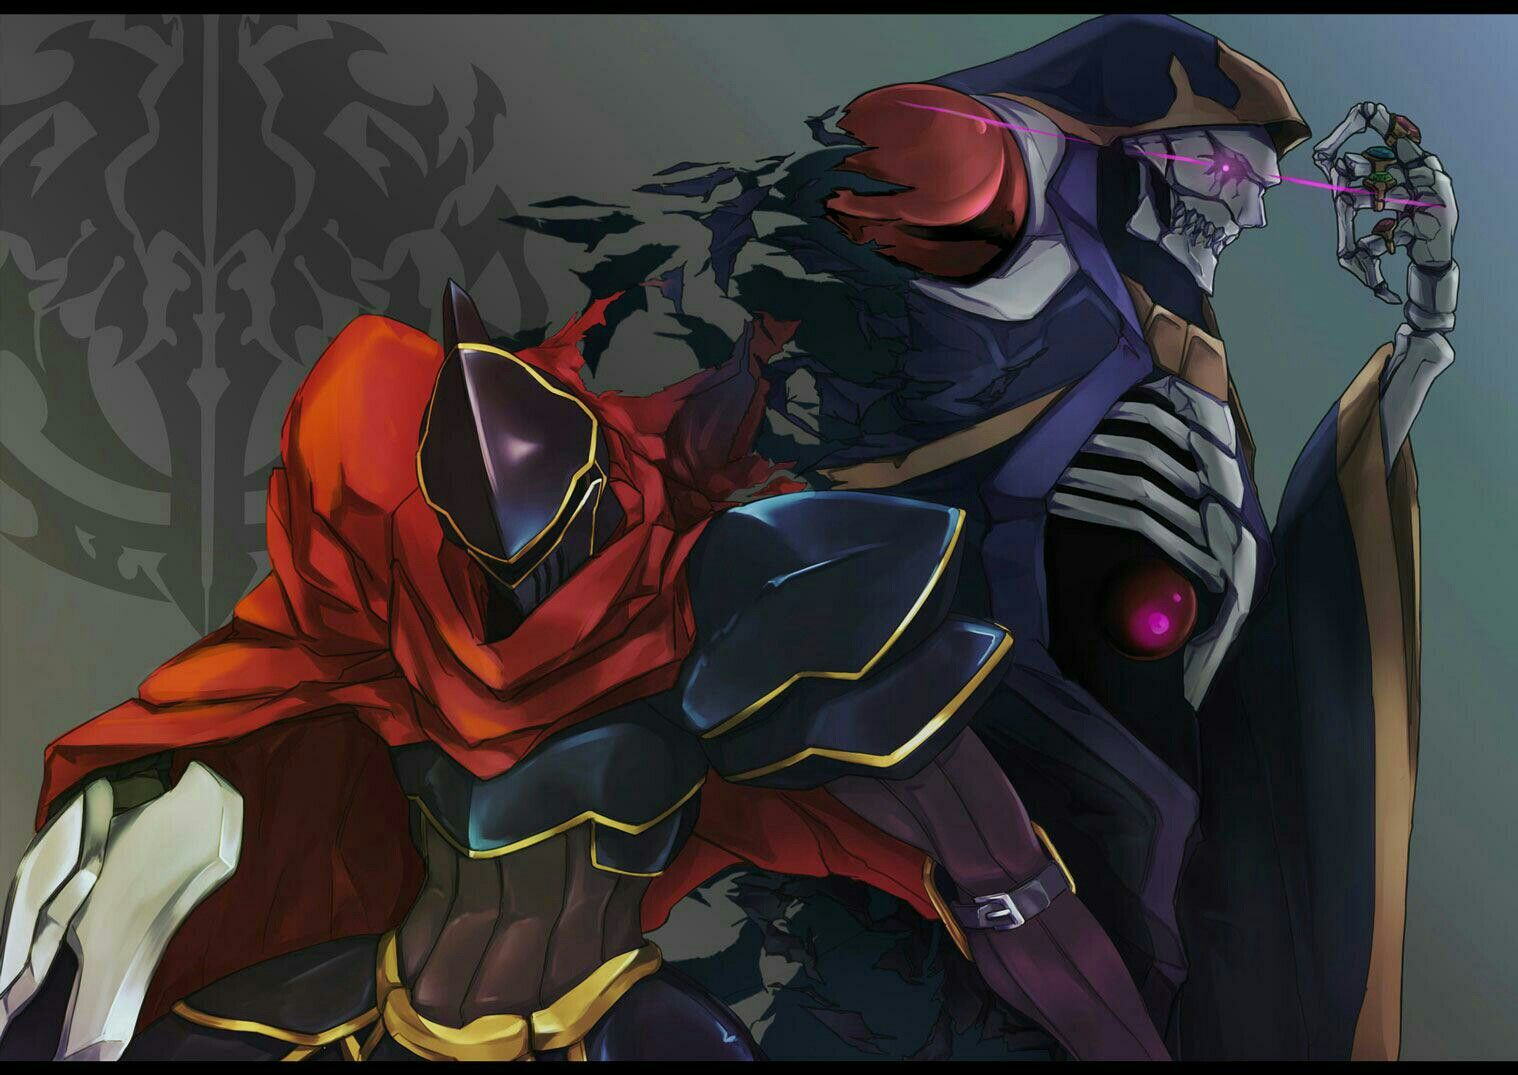 Lord Ainz With Images Anime Wallpaper Popular Anime Anime